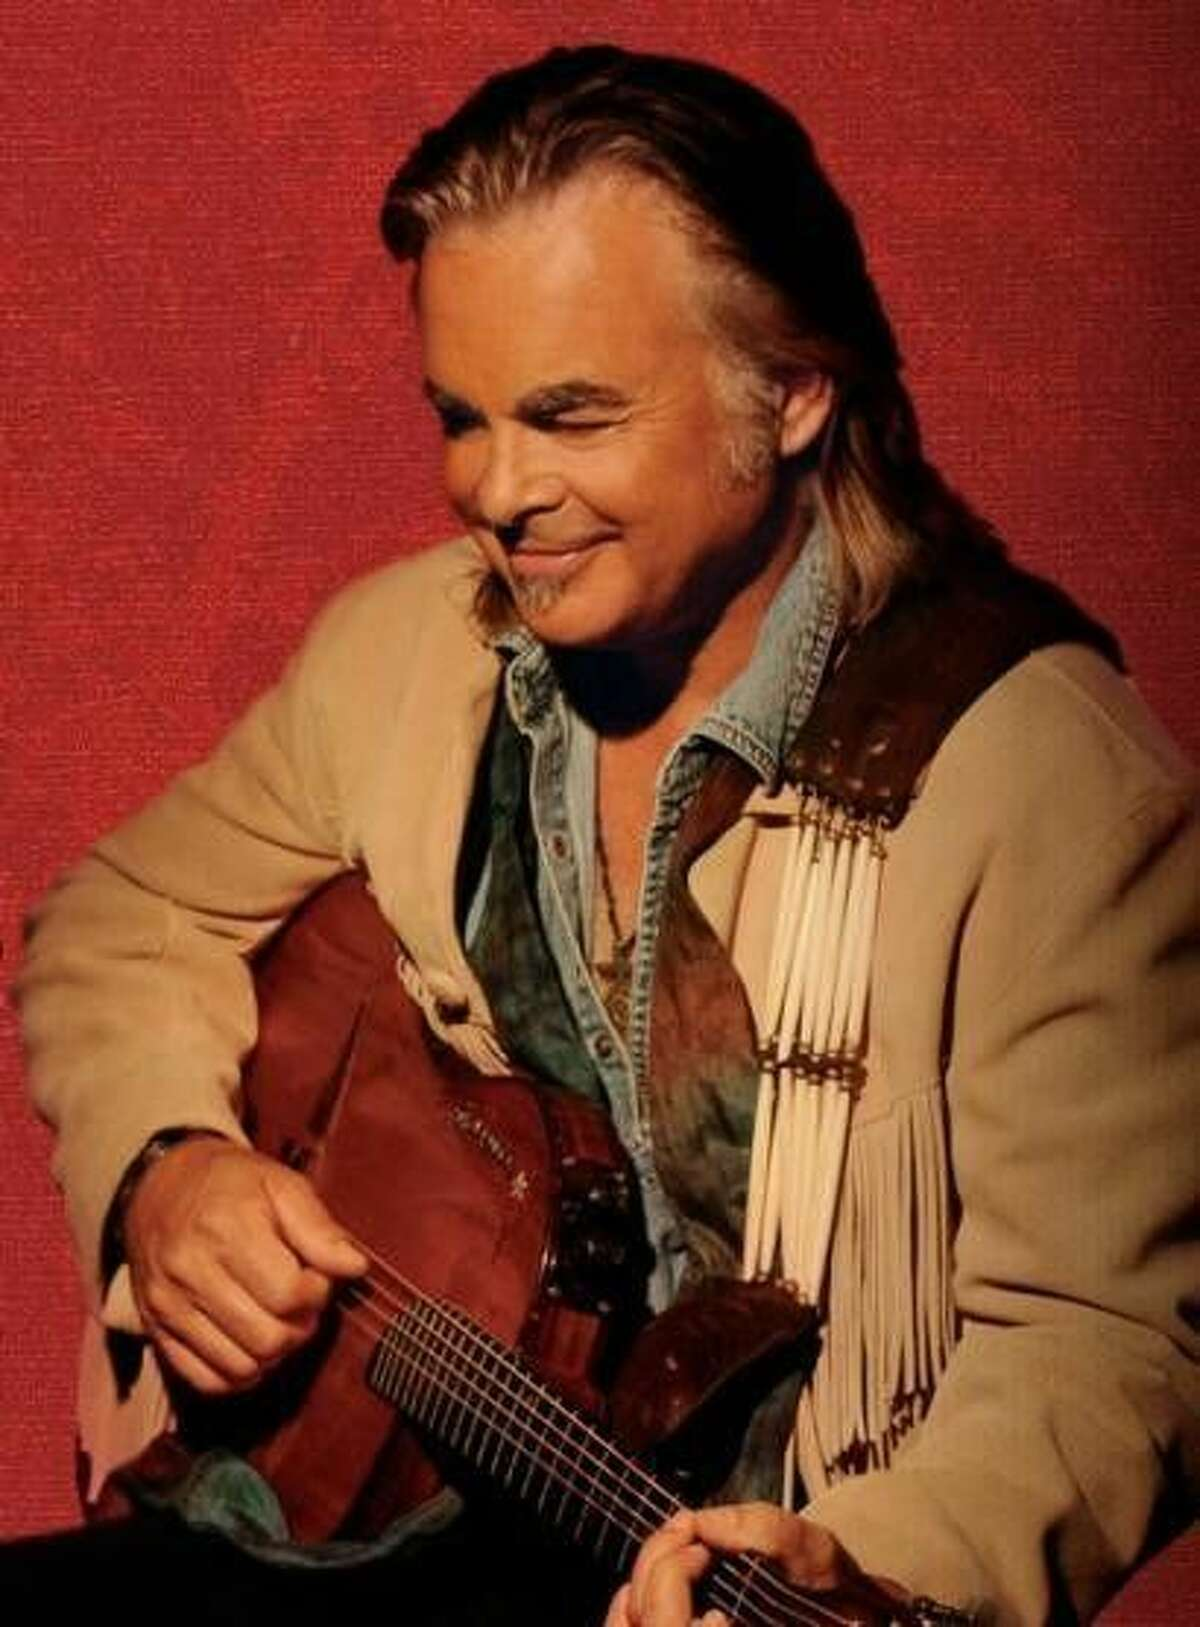 Courtesy photoHal Ketchum will be the headliner at the Real Life Real Music Festival Oct. 4 at Bernhardt Winery near Plantersville.